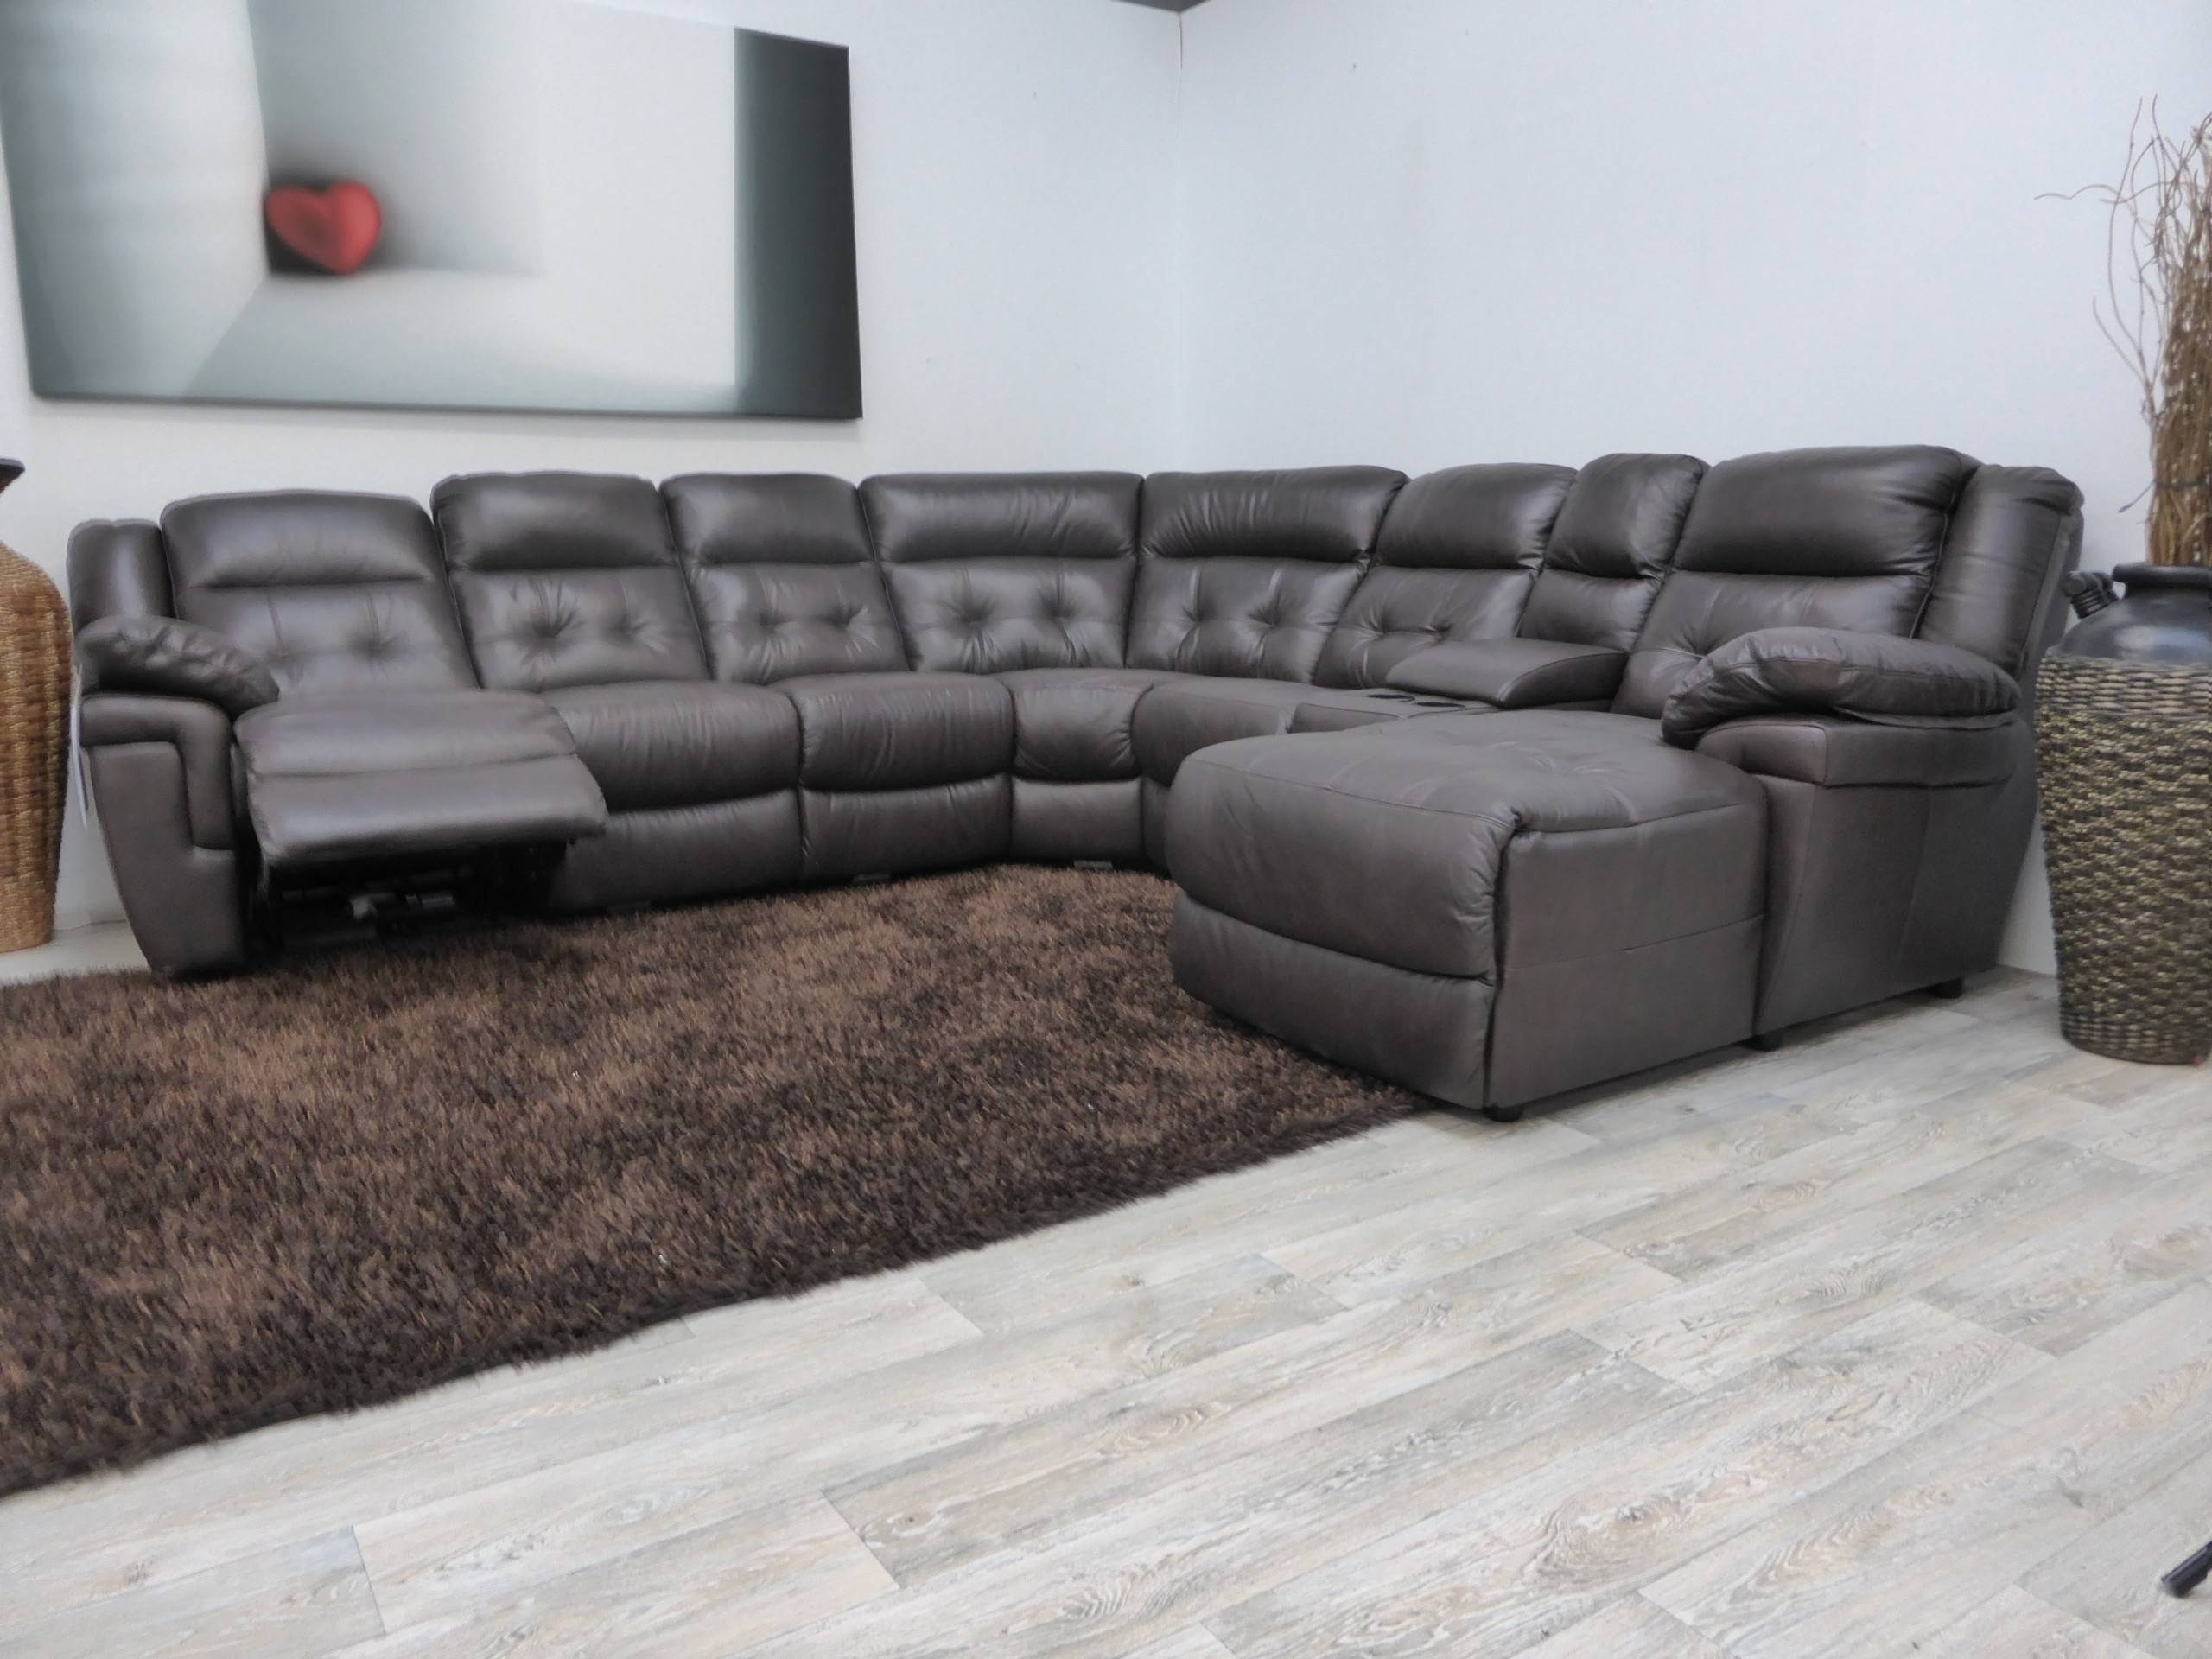 Chesterfield Corner Sofa London Sectional Nigeria Sofas Uk Leather Regarding London Ontario Sectional Sofas (Image 1 of 10)